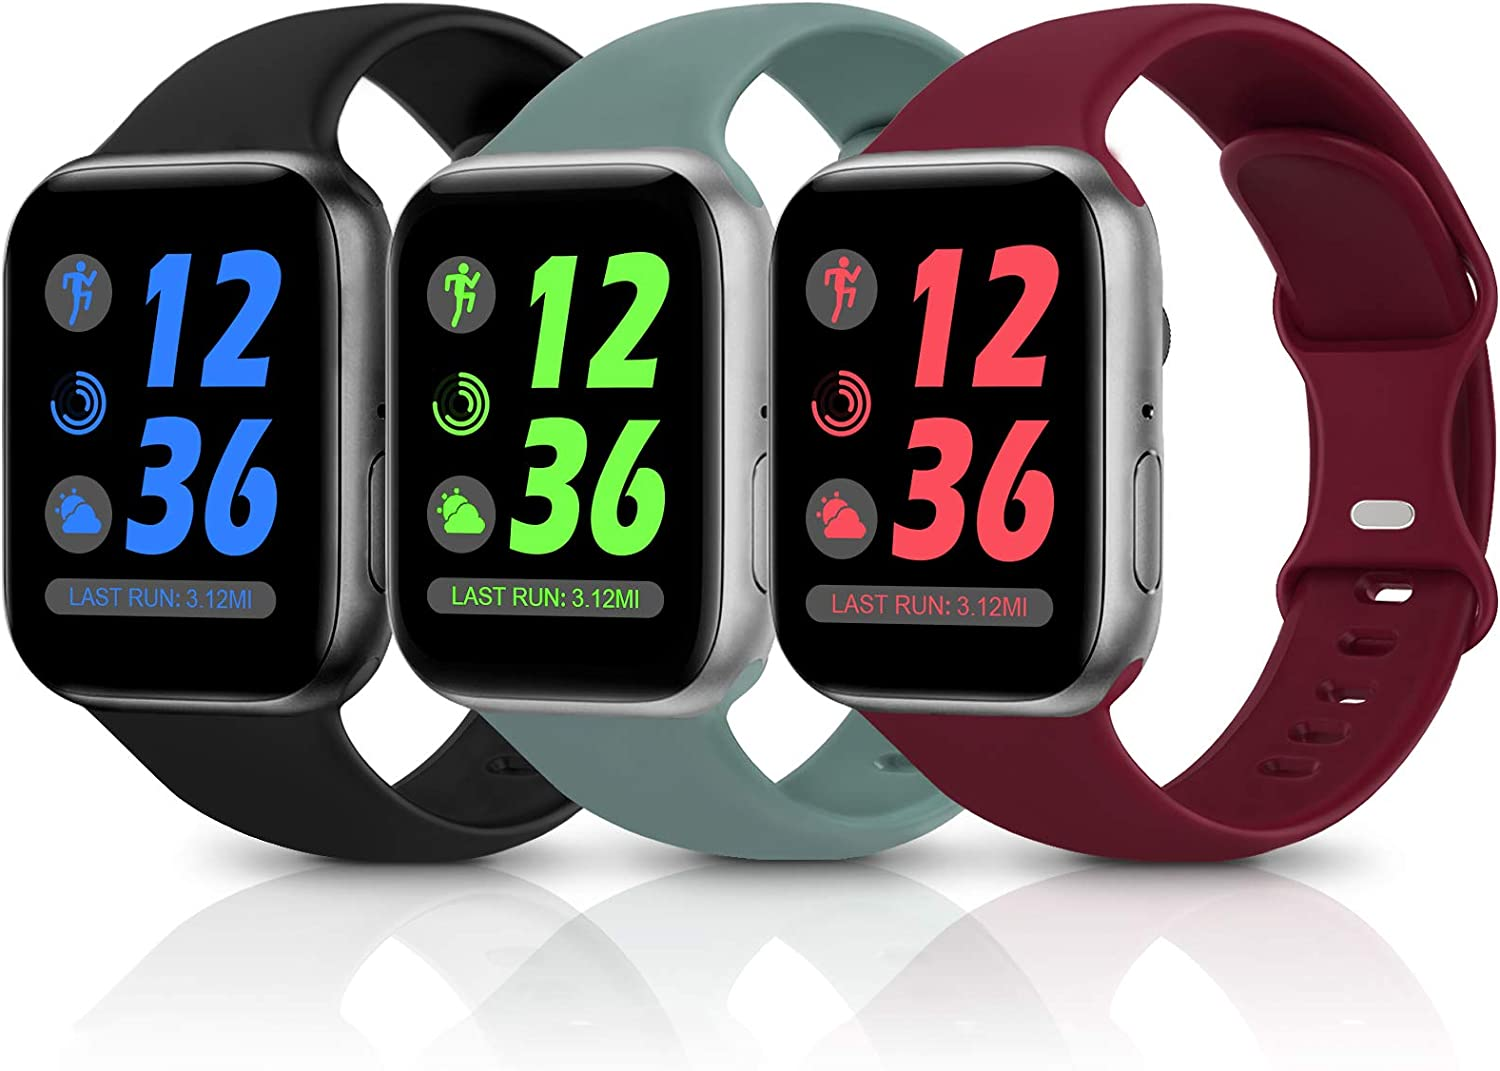 Sport Silicone Band Compatible with Apple Watch Bands 38mm 40mm 42mm 44mm,Soft Replacement Wristbands for iWatch Series 1/2/3/4/5/6/SE,Women Men,3 Pack(Black/Wine Red/Cactus,38mm/40mm-S/M)